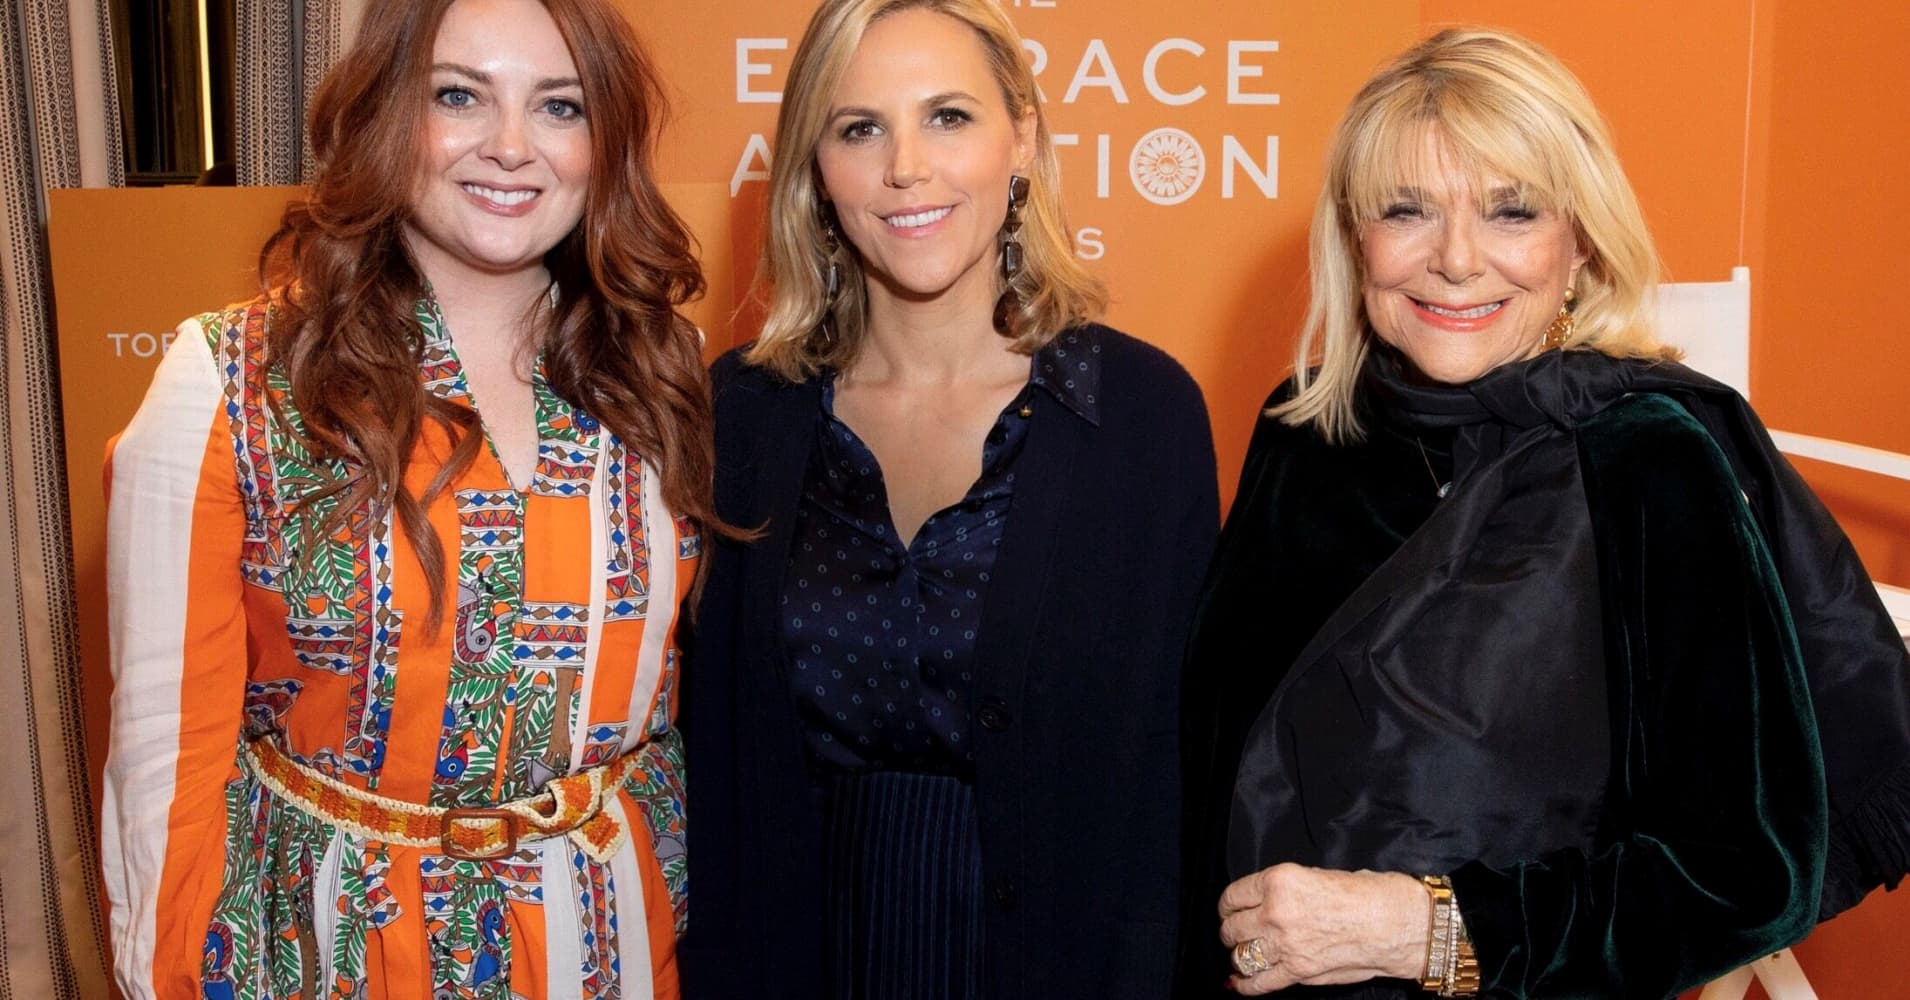 (L-R): Glamour editor-in-chief Samantha Barry; Tory Burch; and her mother, Reva Robinson, at the Embrace Ambition event in Philadelphia on March 4, 2019